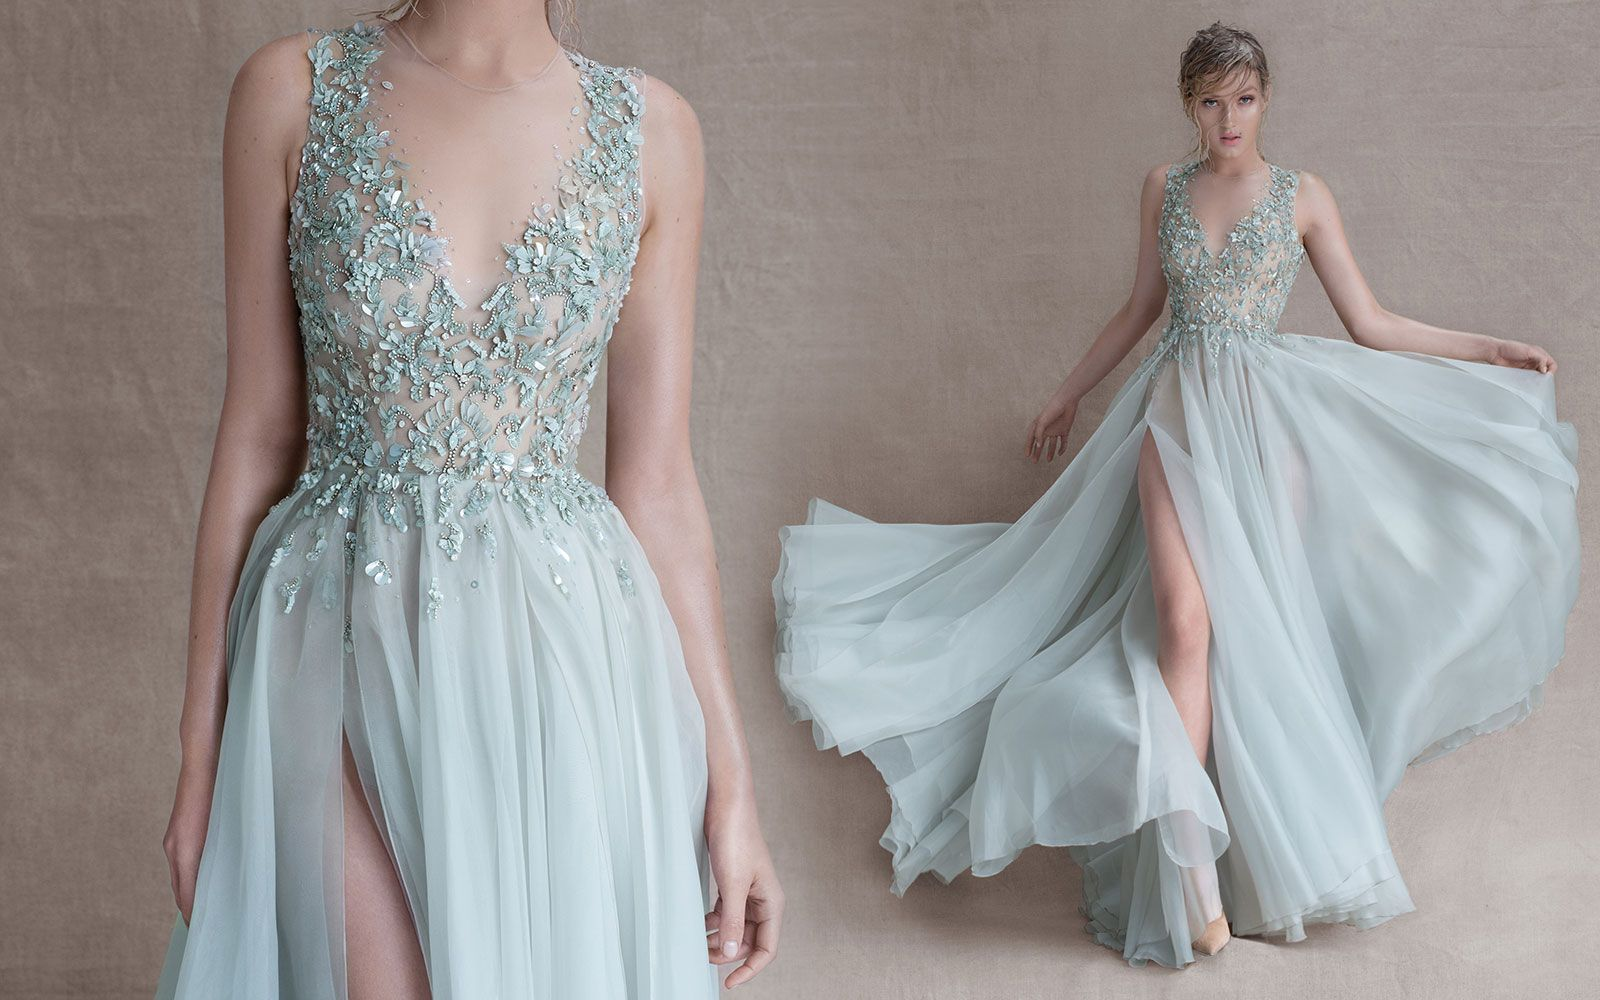 2014-15 SS Couture   Paolo Sebastian   Some day   Pinterest   Paolo ...